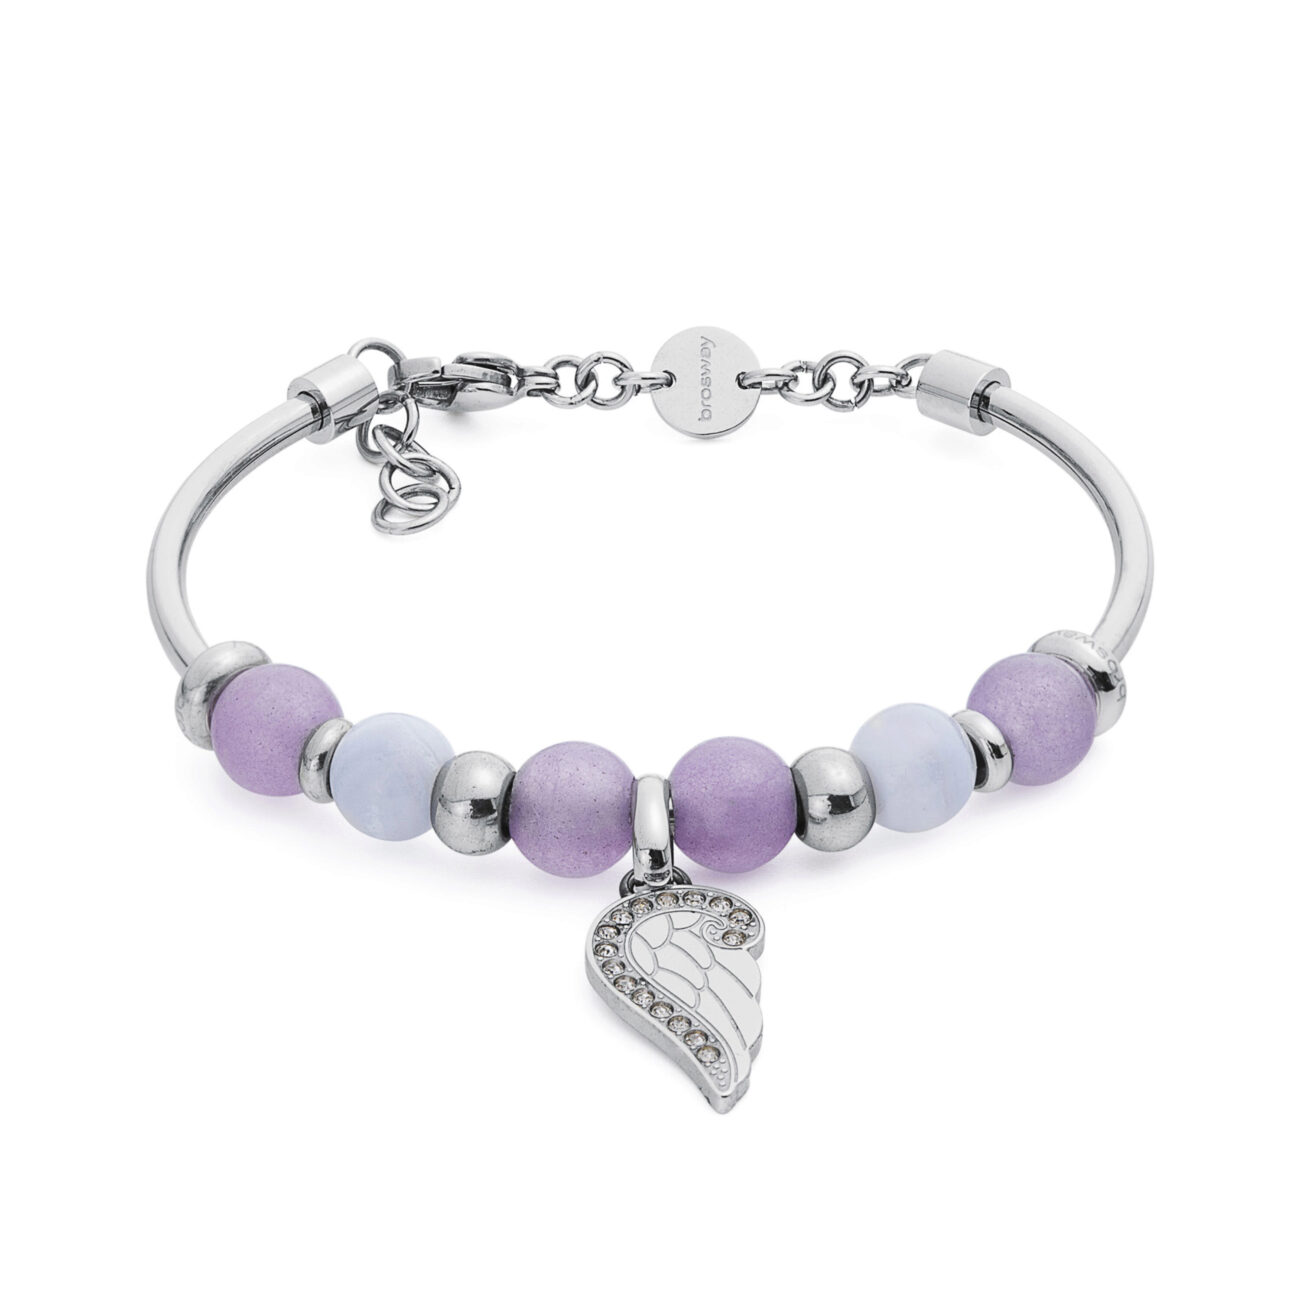 316L stainless steel composable bracelet, lilac jade, blue lace agate and crystal Swarovski® crystals.